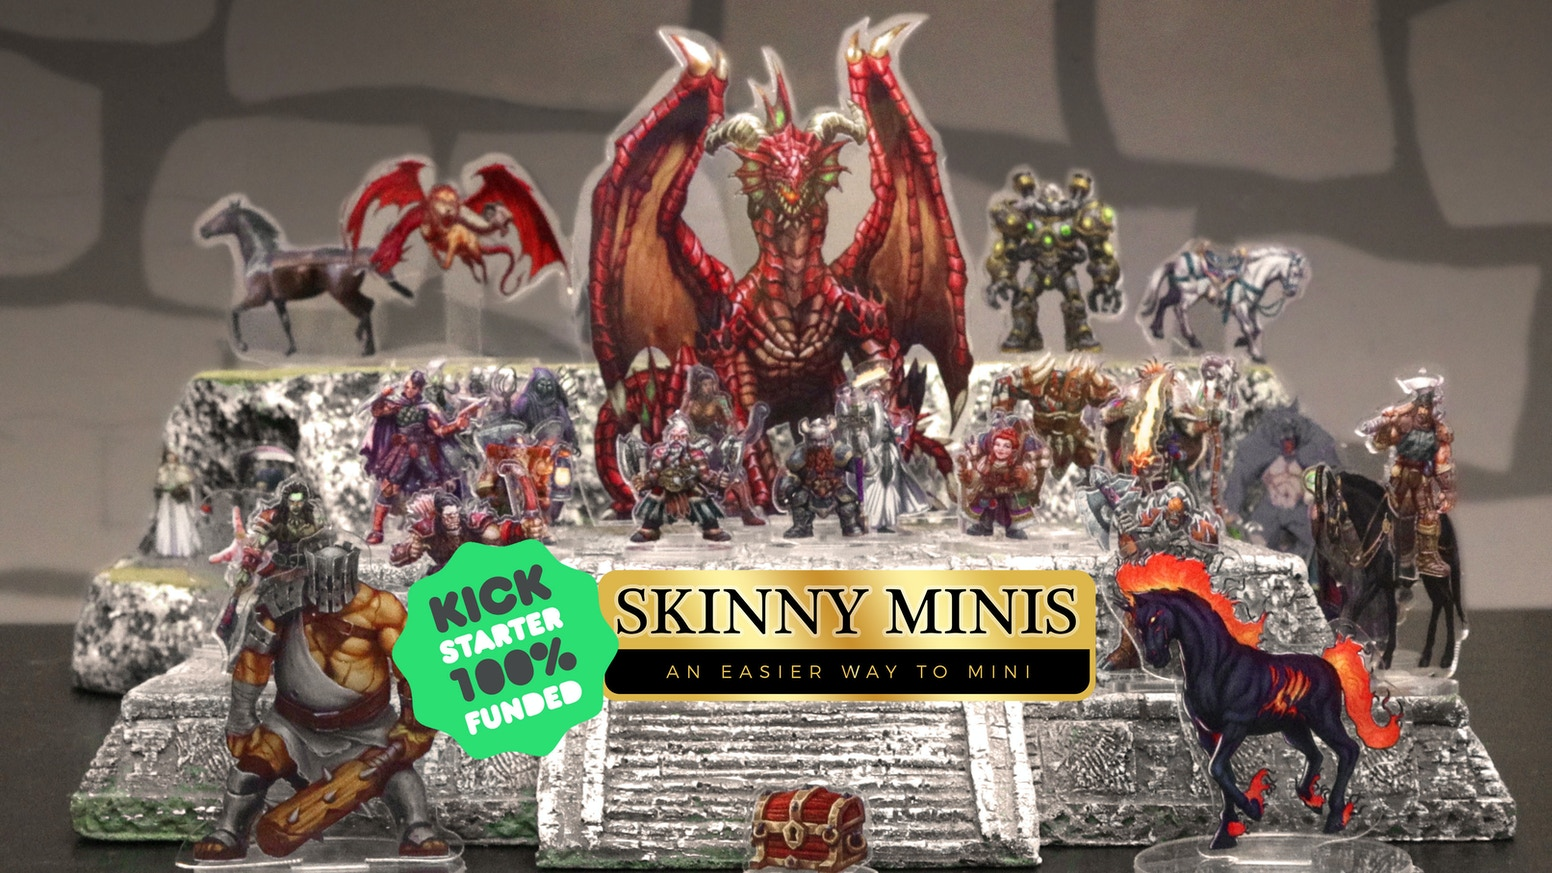 Durable, beautiful, affordable minis. An easier way to mini. - Subscribe to Dungeon in a Box for exclusive Skinny Minis every month. -